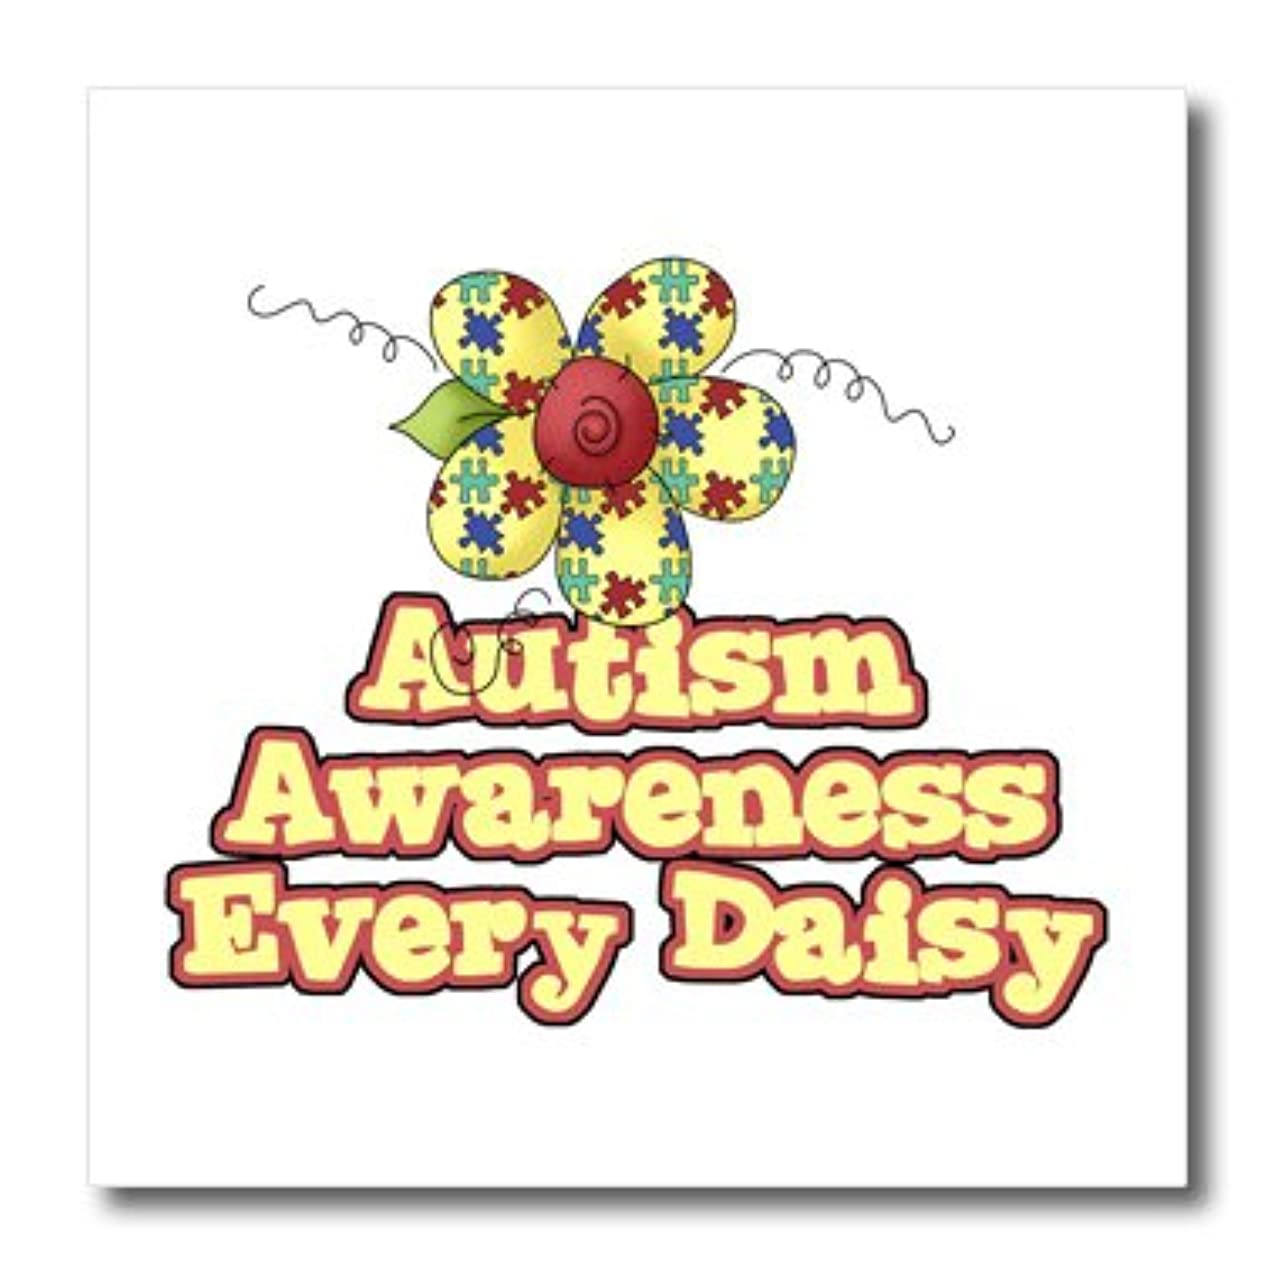 3dRose ht_113515_1 Autism Awareness Every Daisy (Day) Awareness Ribbon Cause Design-Iron on Heat Transfer for Material, 8 by 8-Inch, White